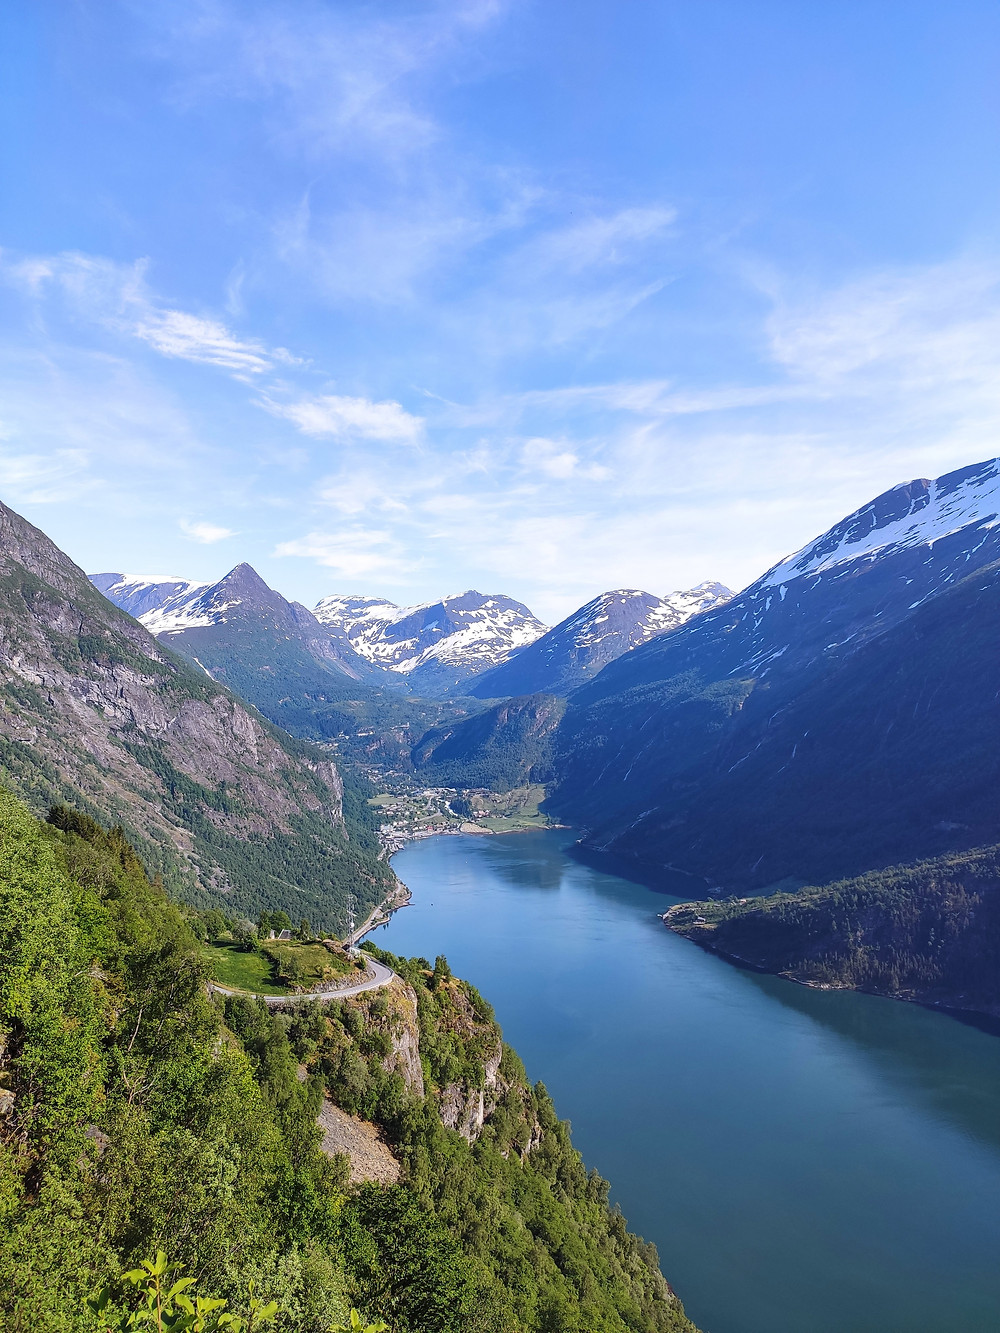 Geiranger in Western Norway from the Ornesvingen viewpoint